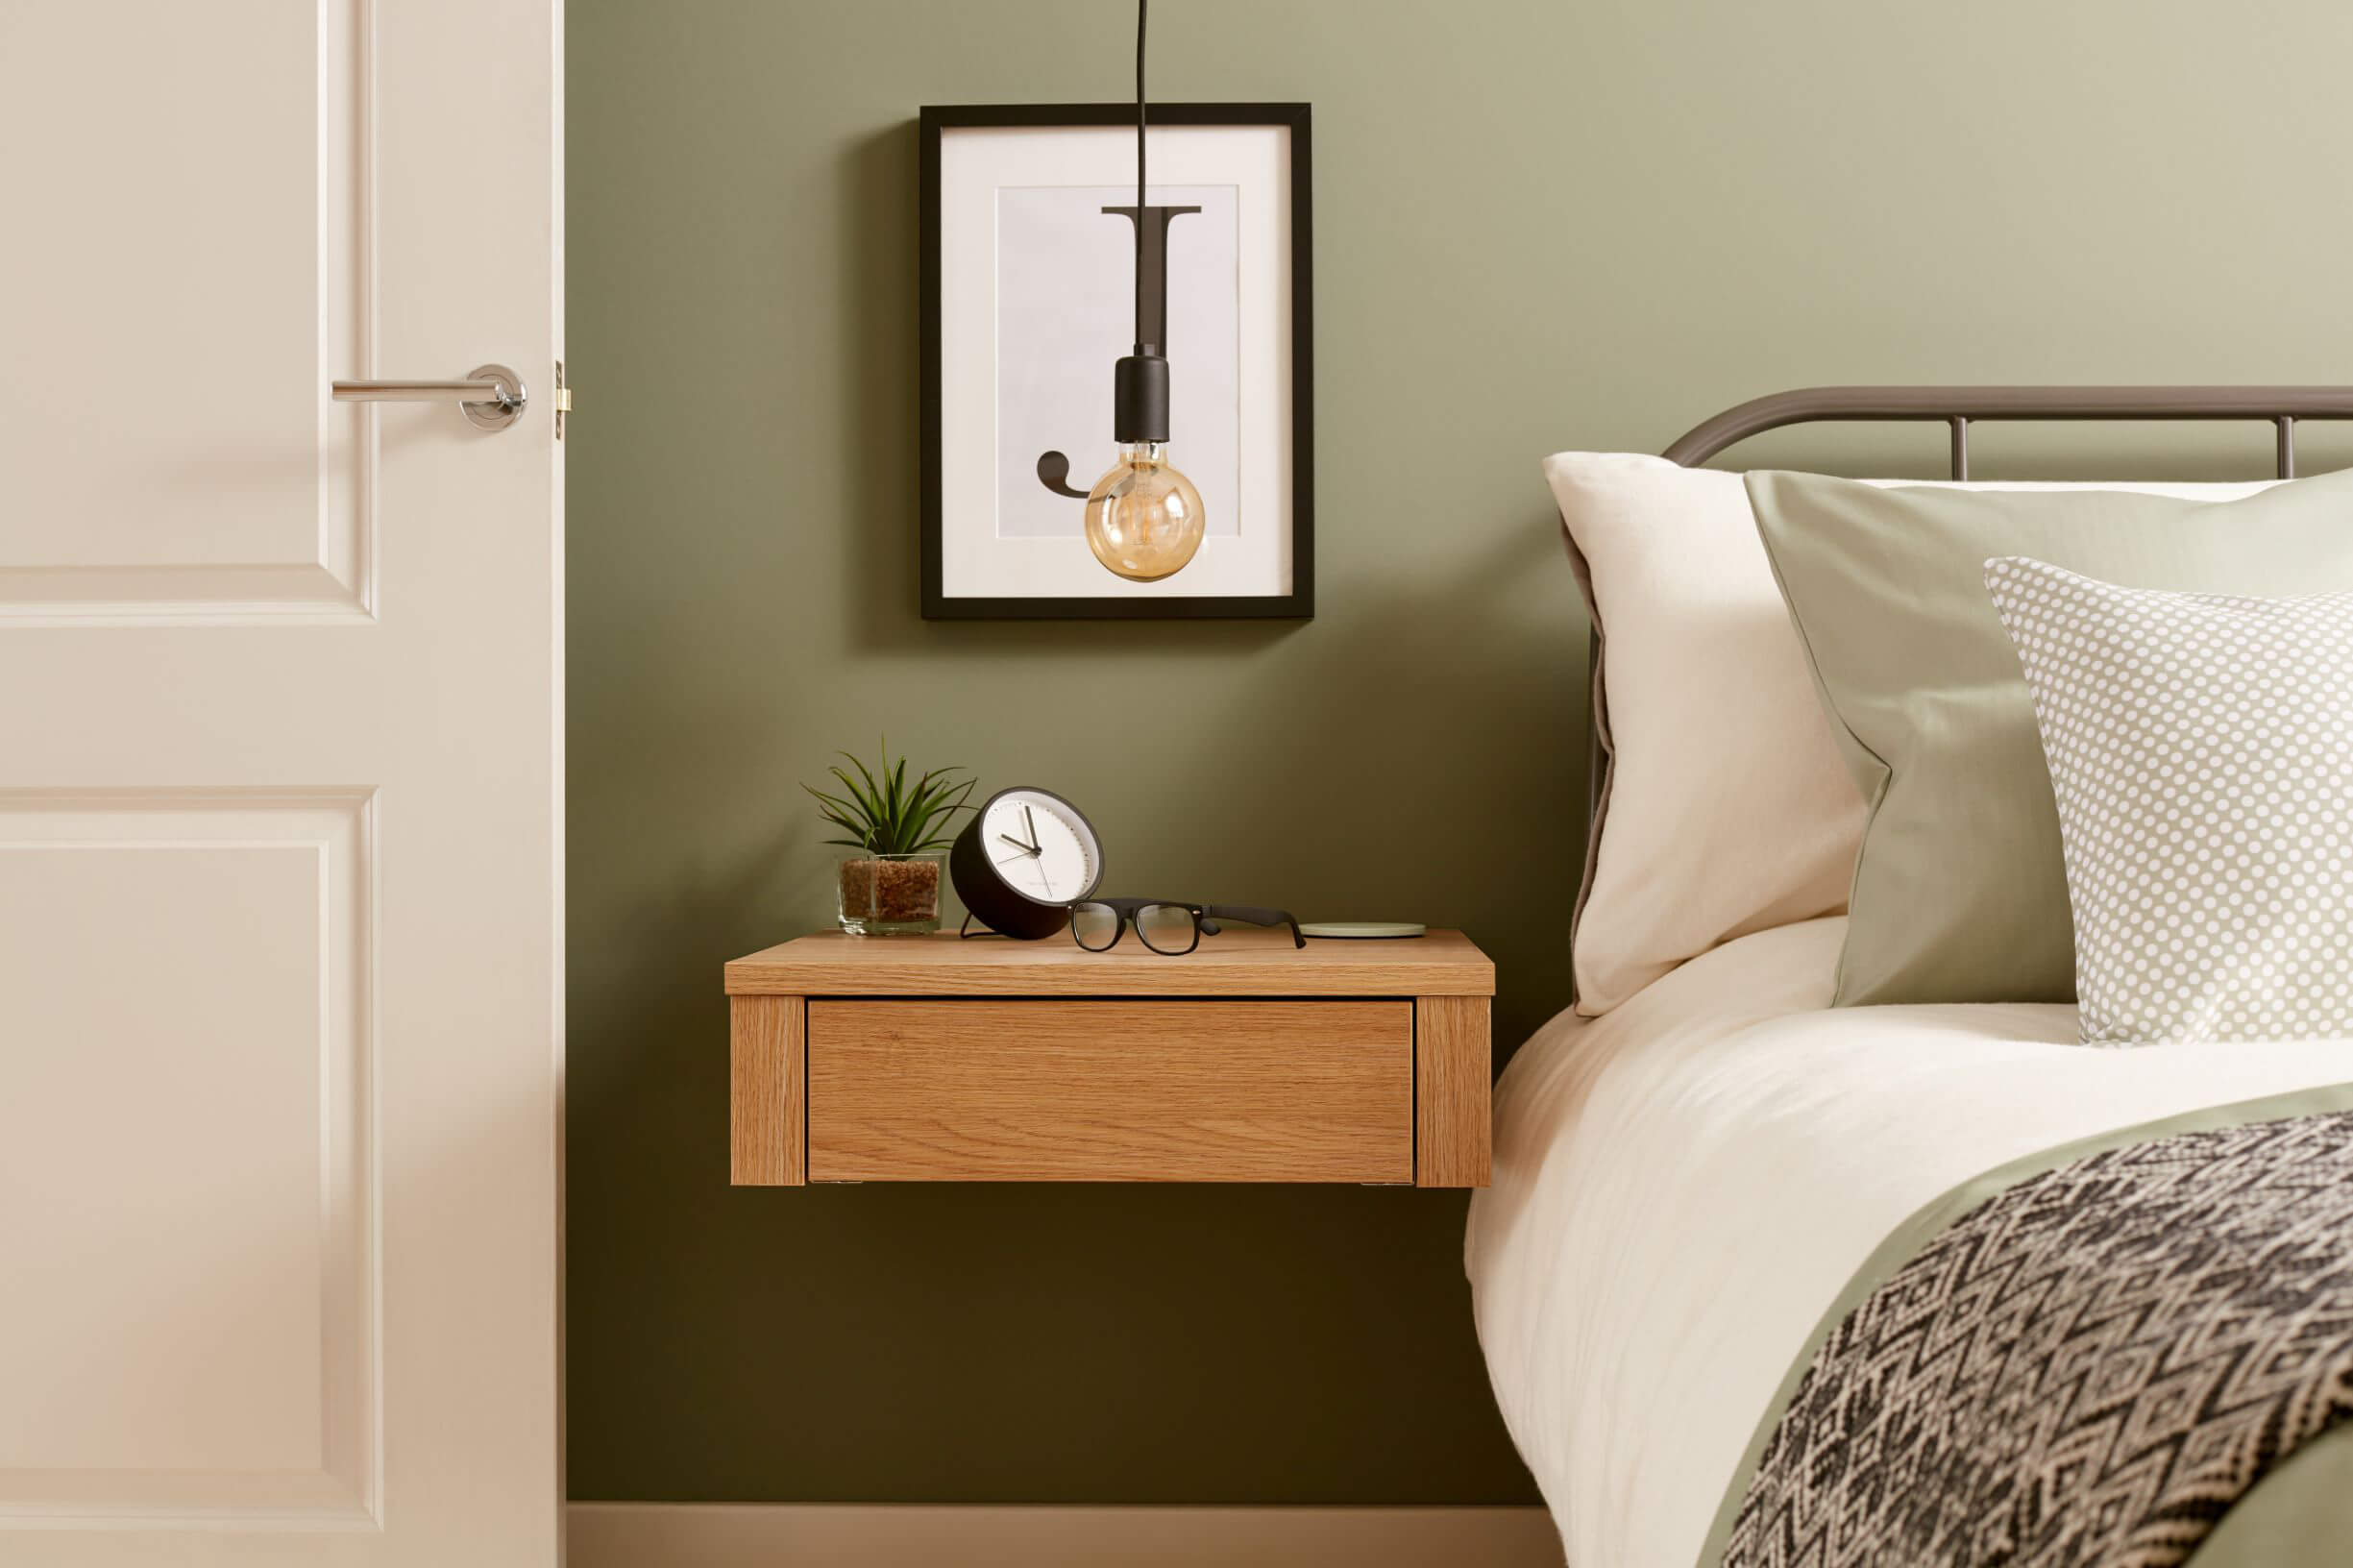 Kindred-Bedrooms-Origin-Gallery3